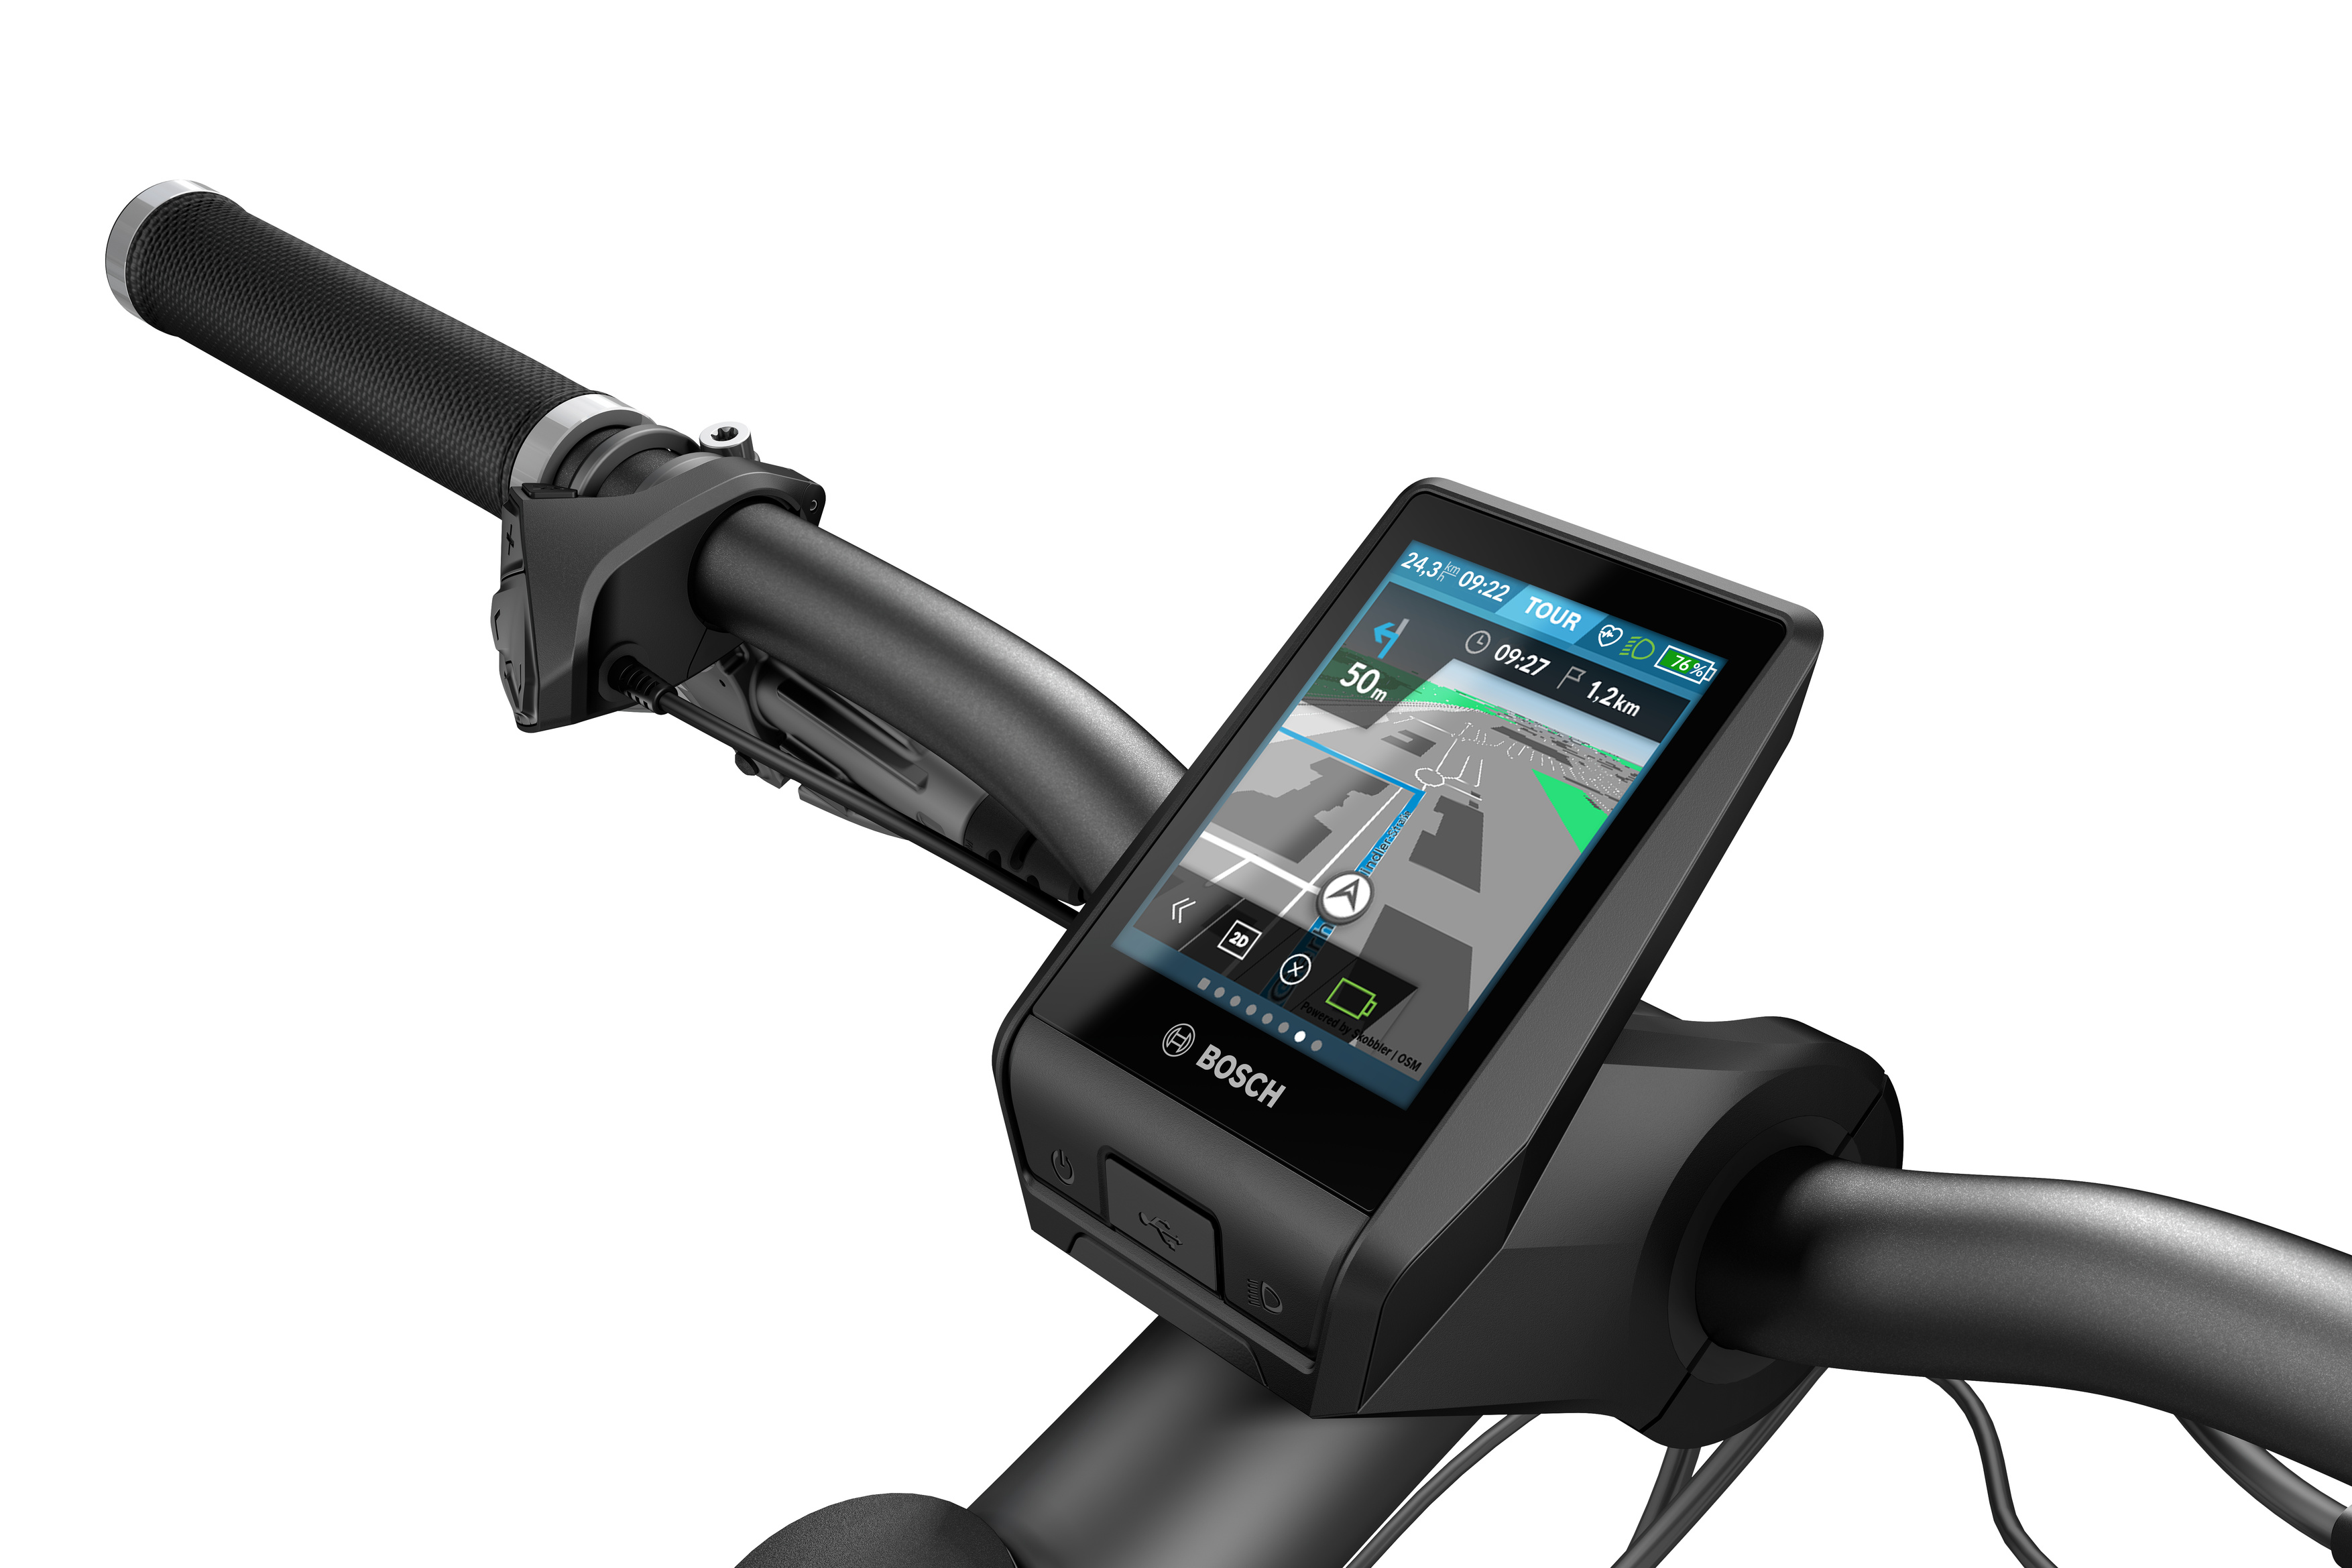 Thanks to Nyon, the eBiker is connected to the digital world and can access functions such as on-board navigation and fitness tracking.